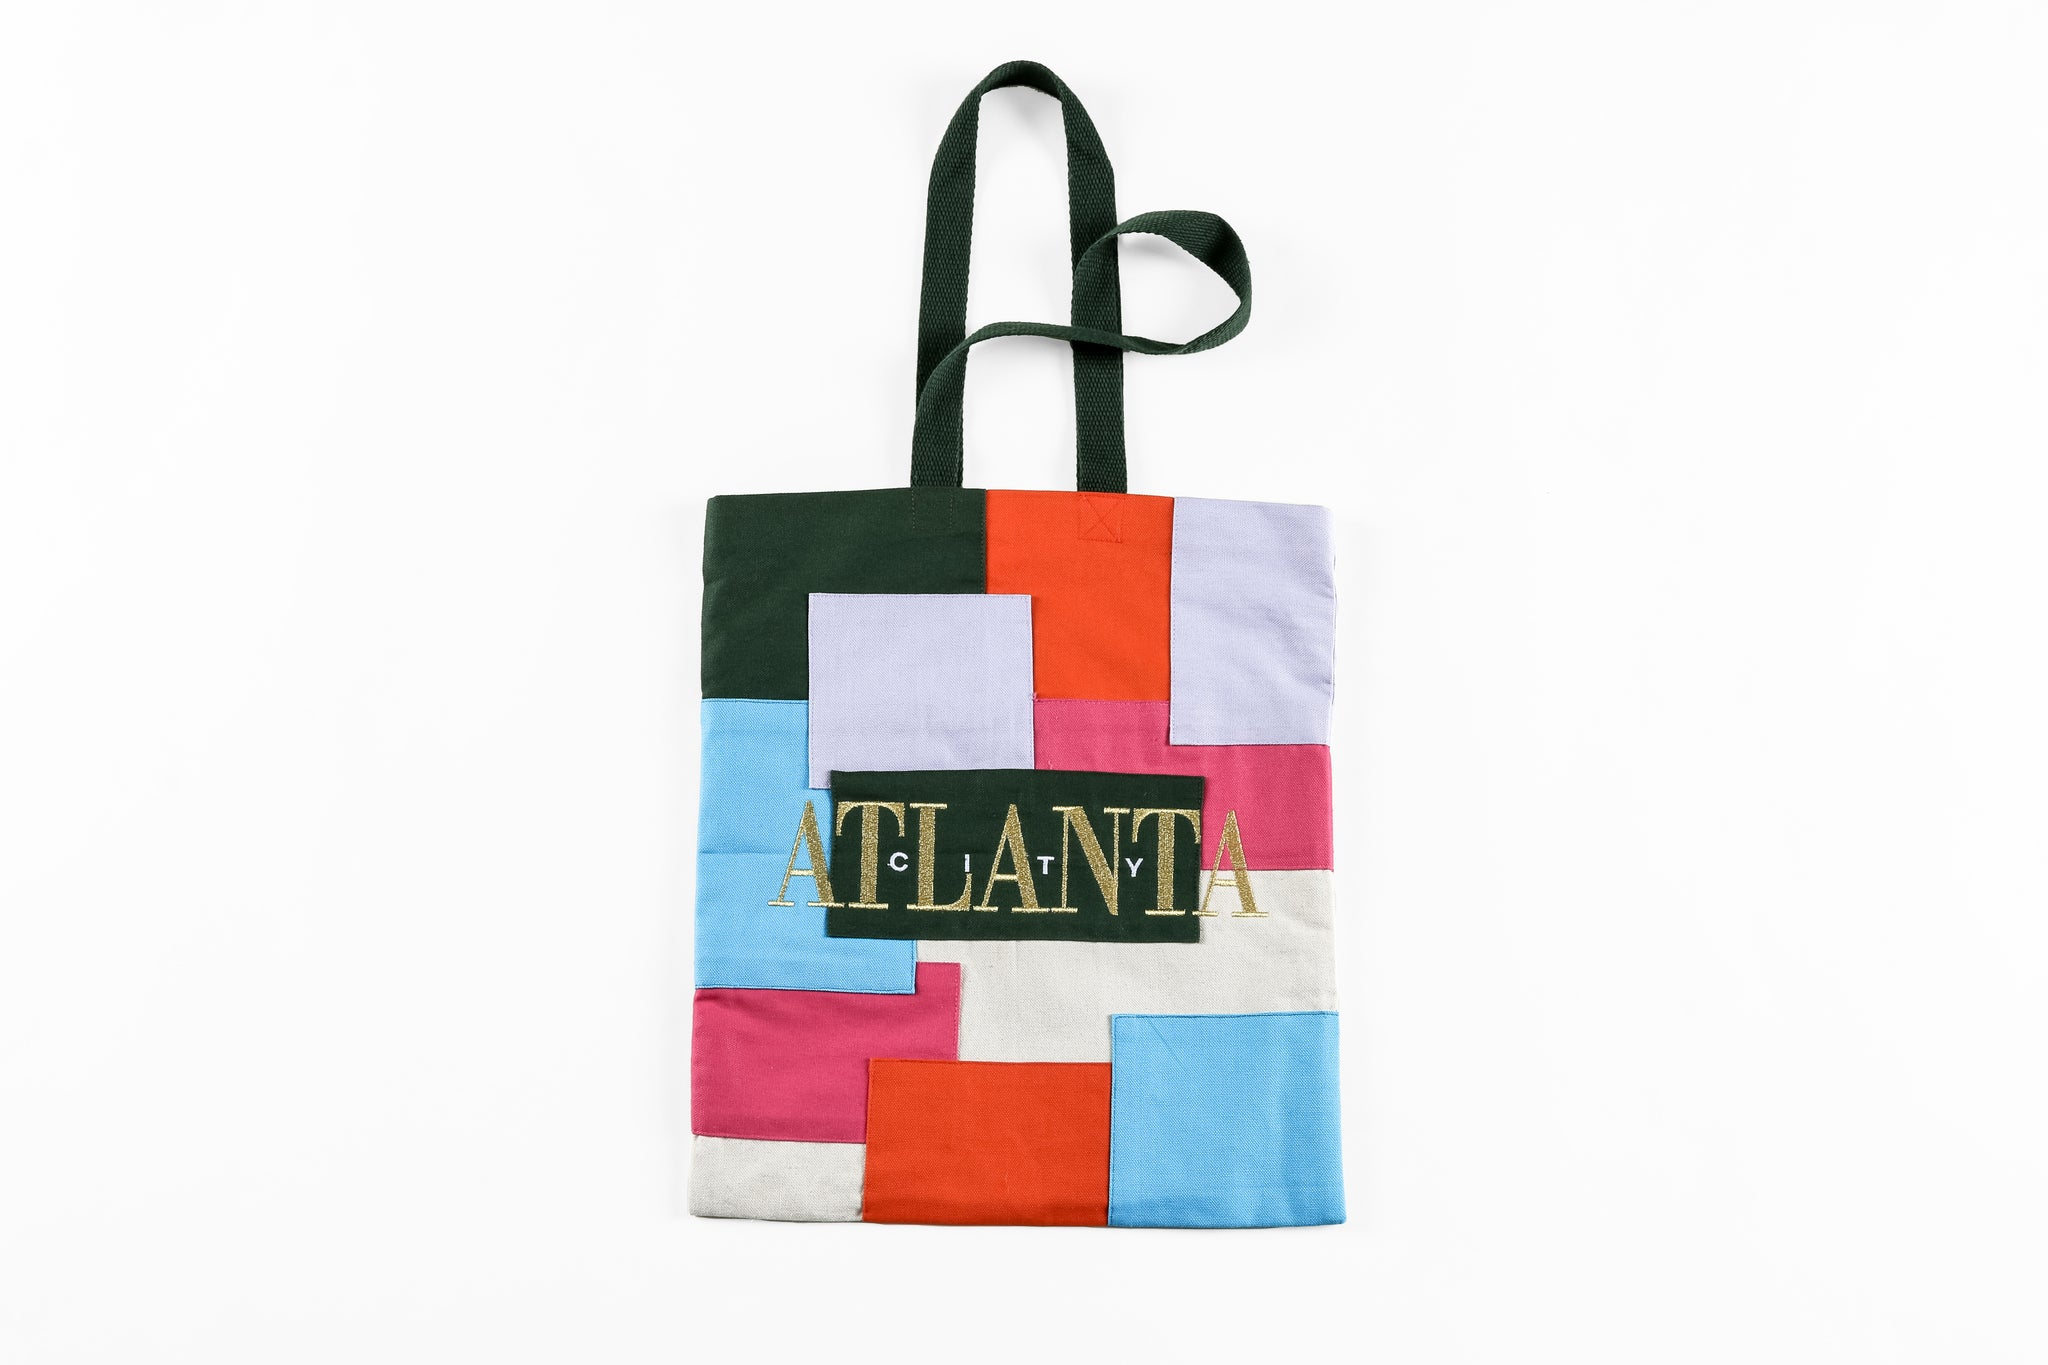 atl1996 Limited Edition Patchwork Tote Bag